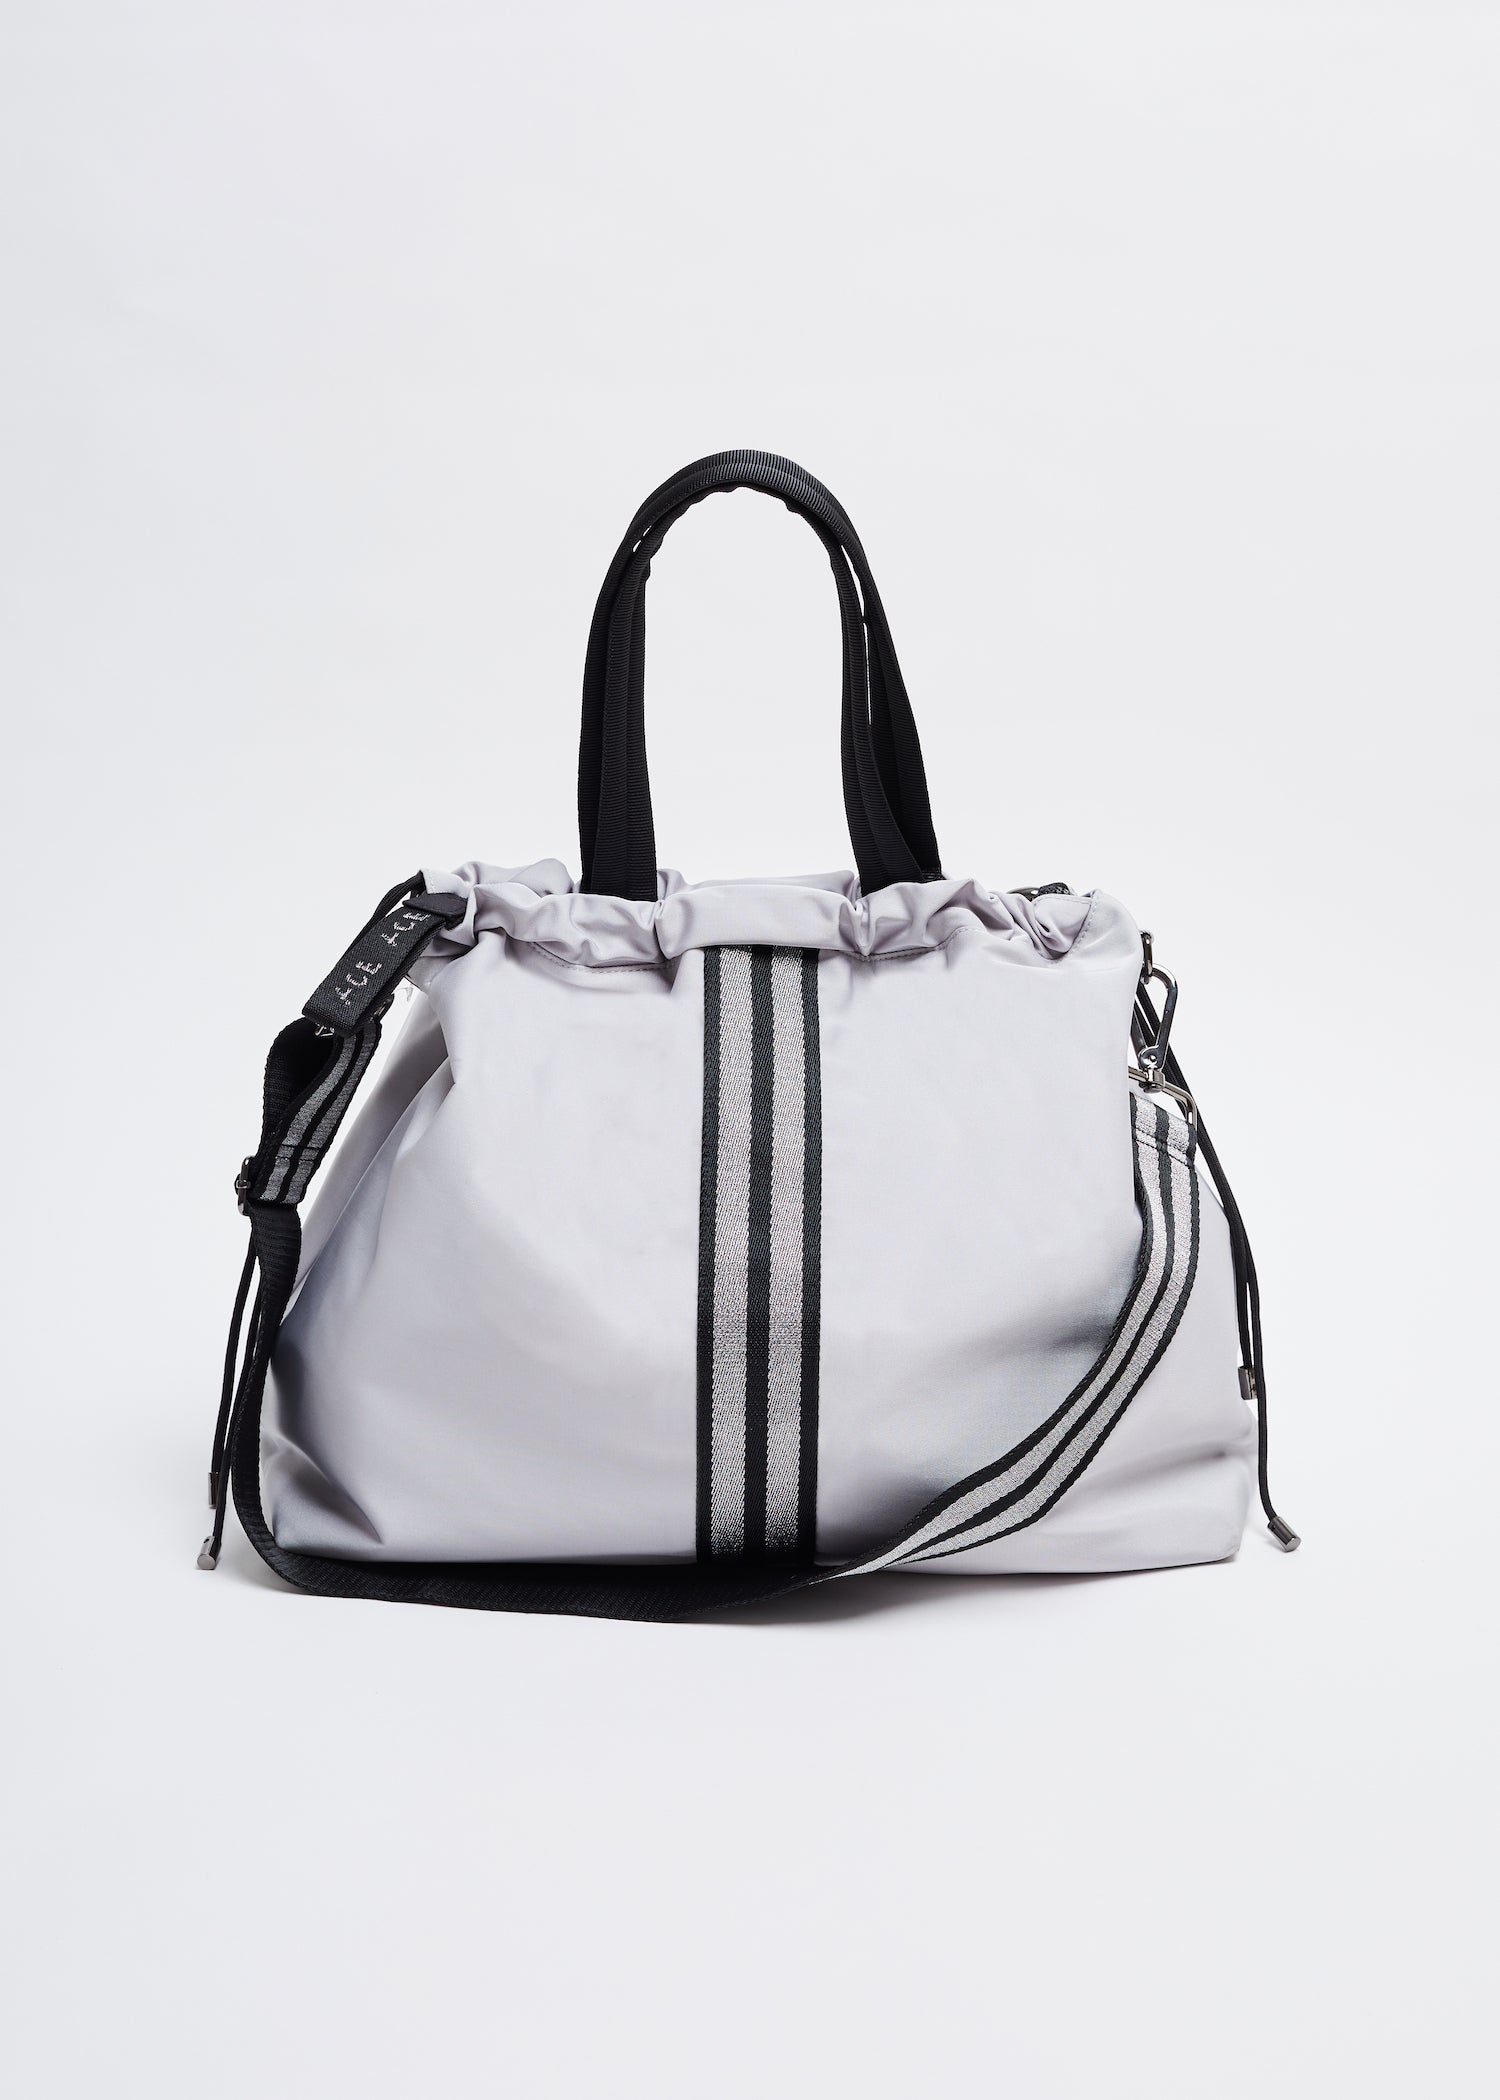 ACE Light Grey Women Tote bag eco fashion